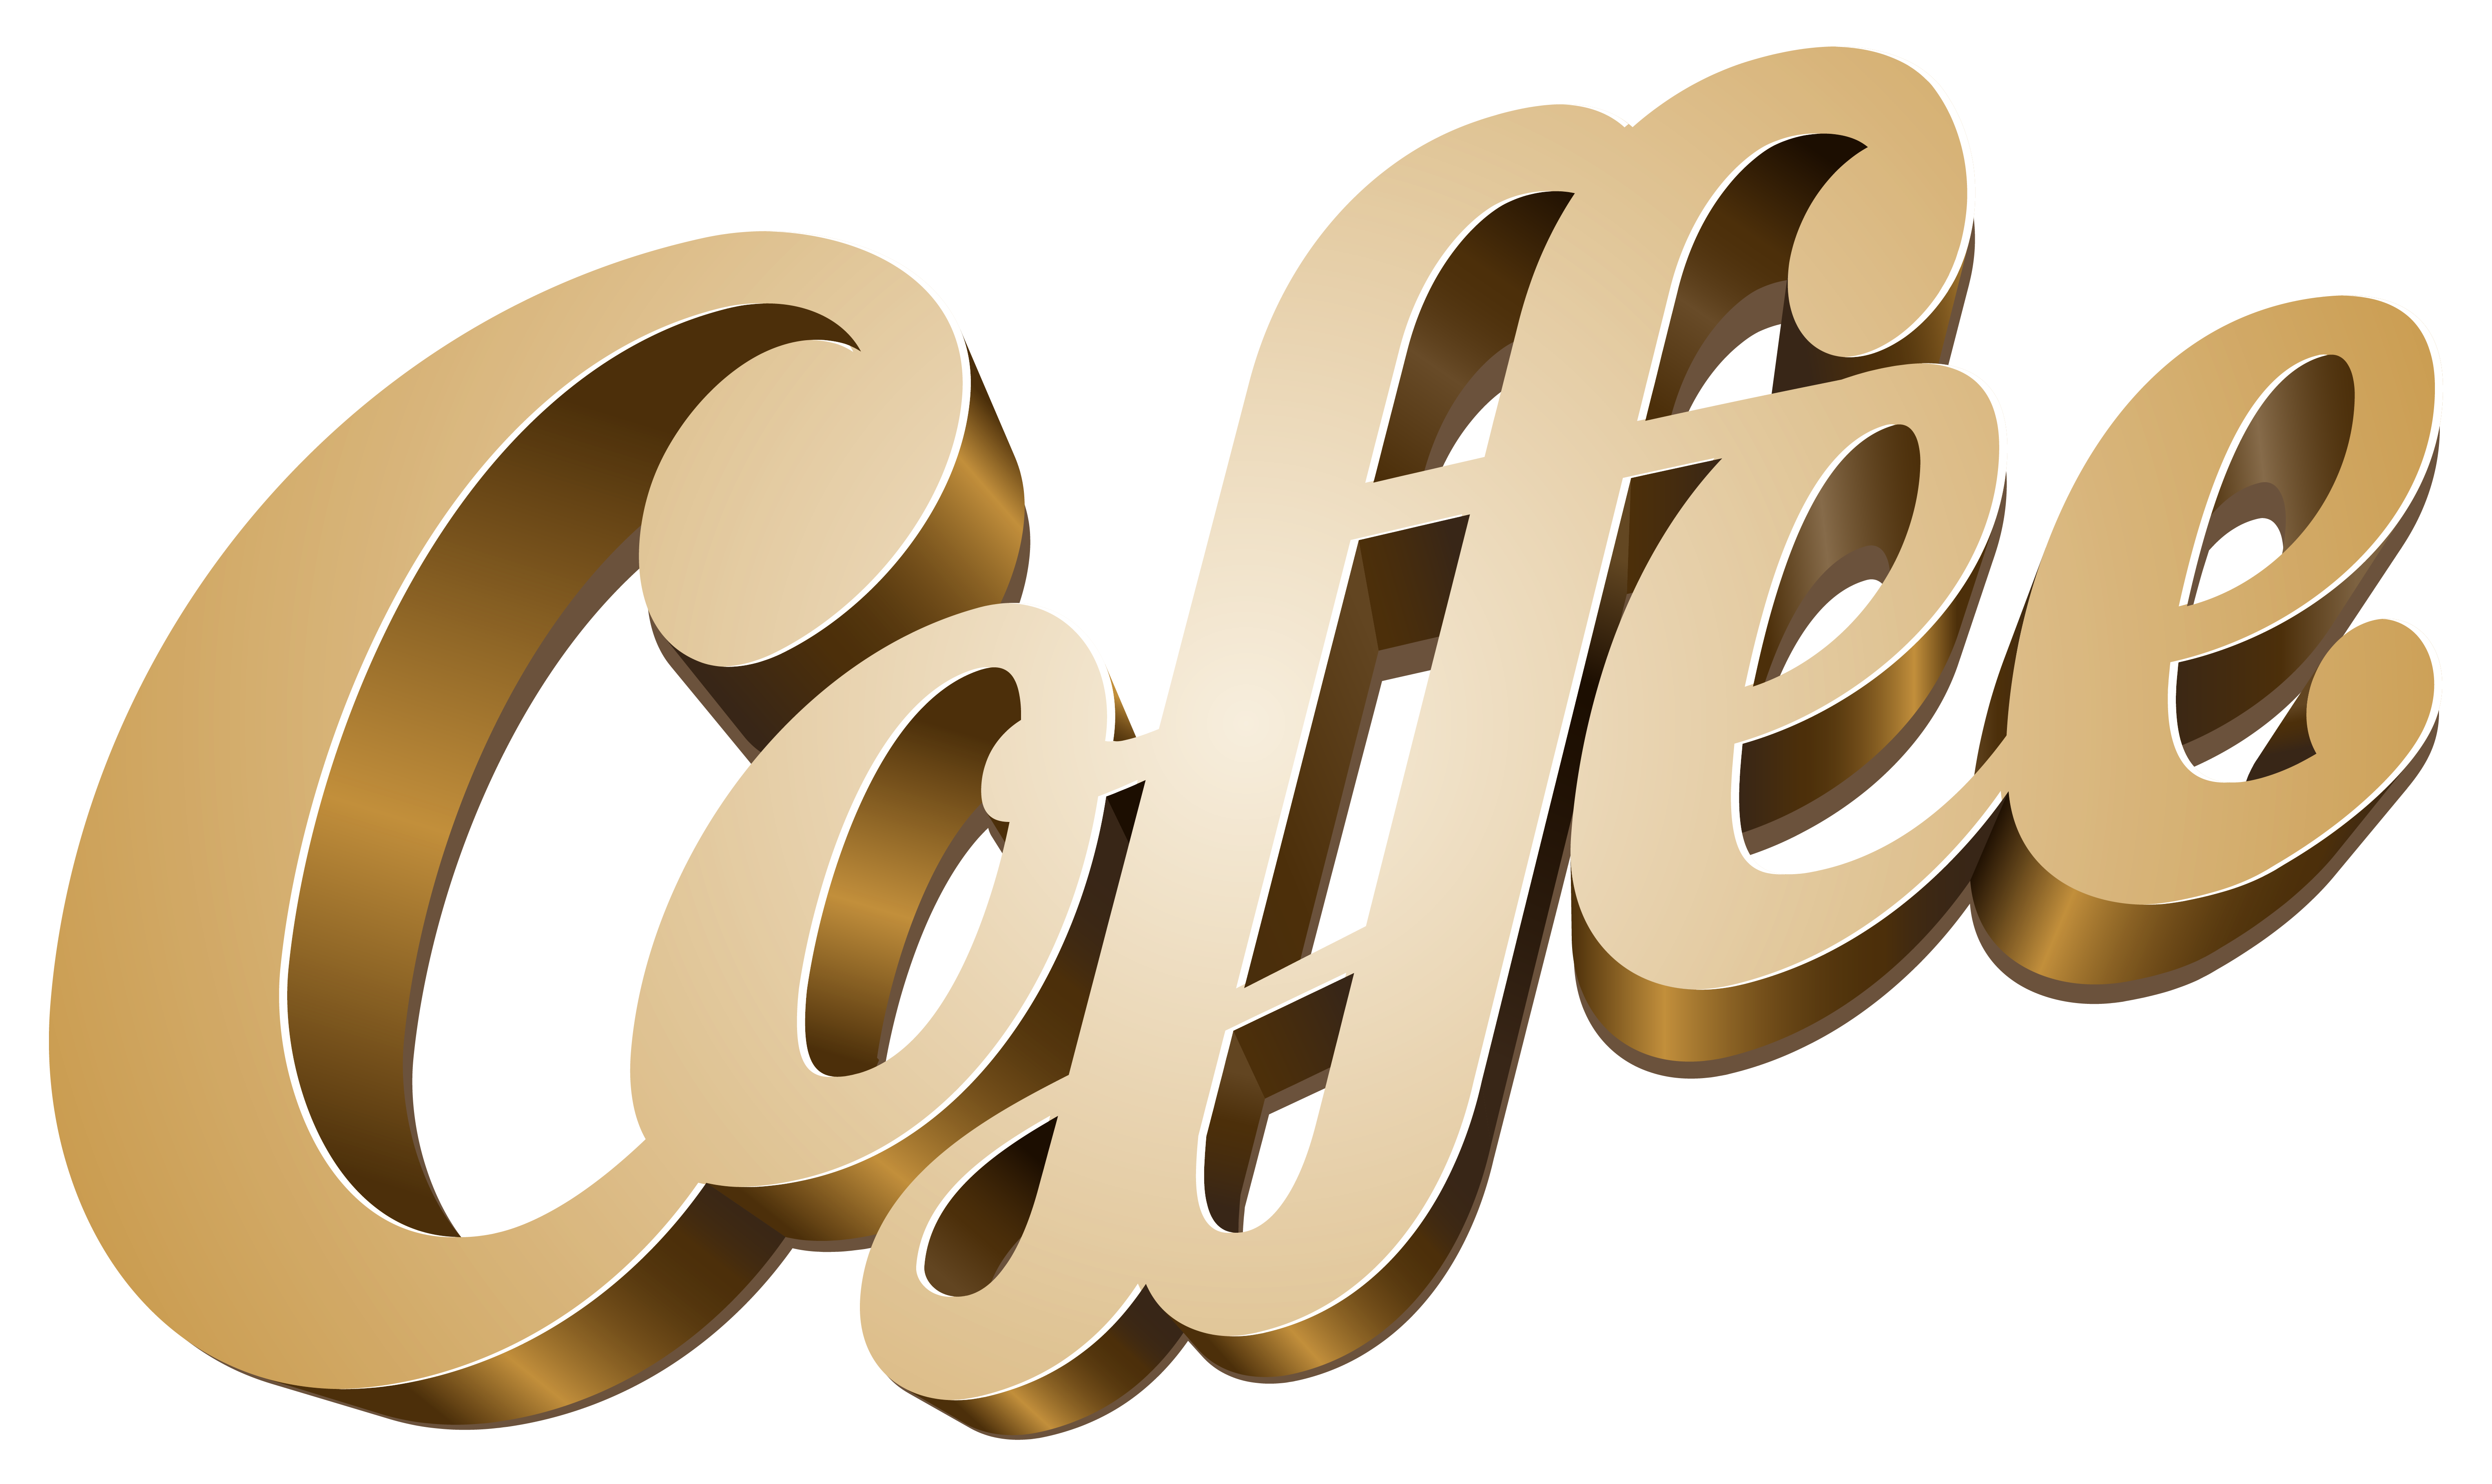 Deco png image gallery. Clipart coffee clip art